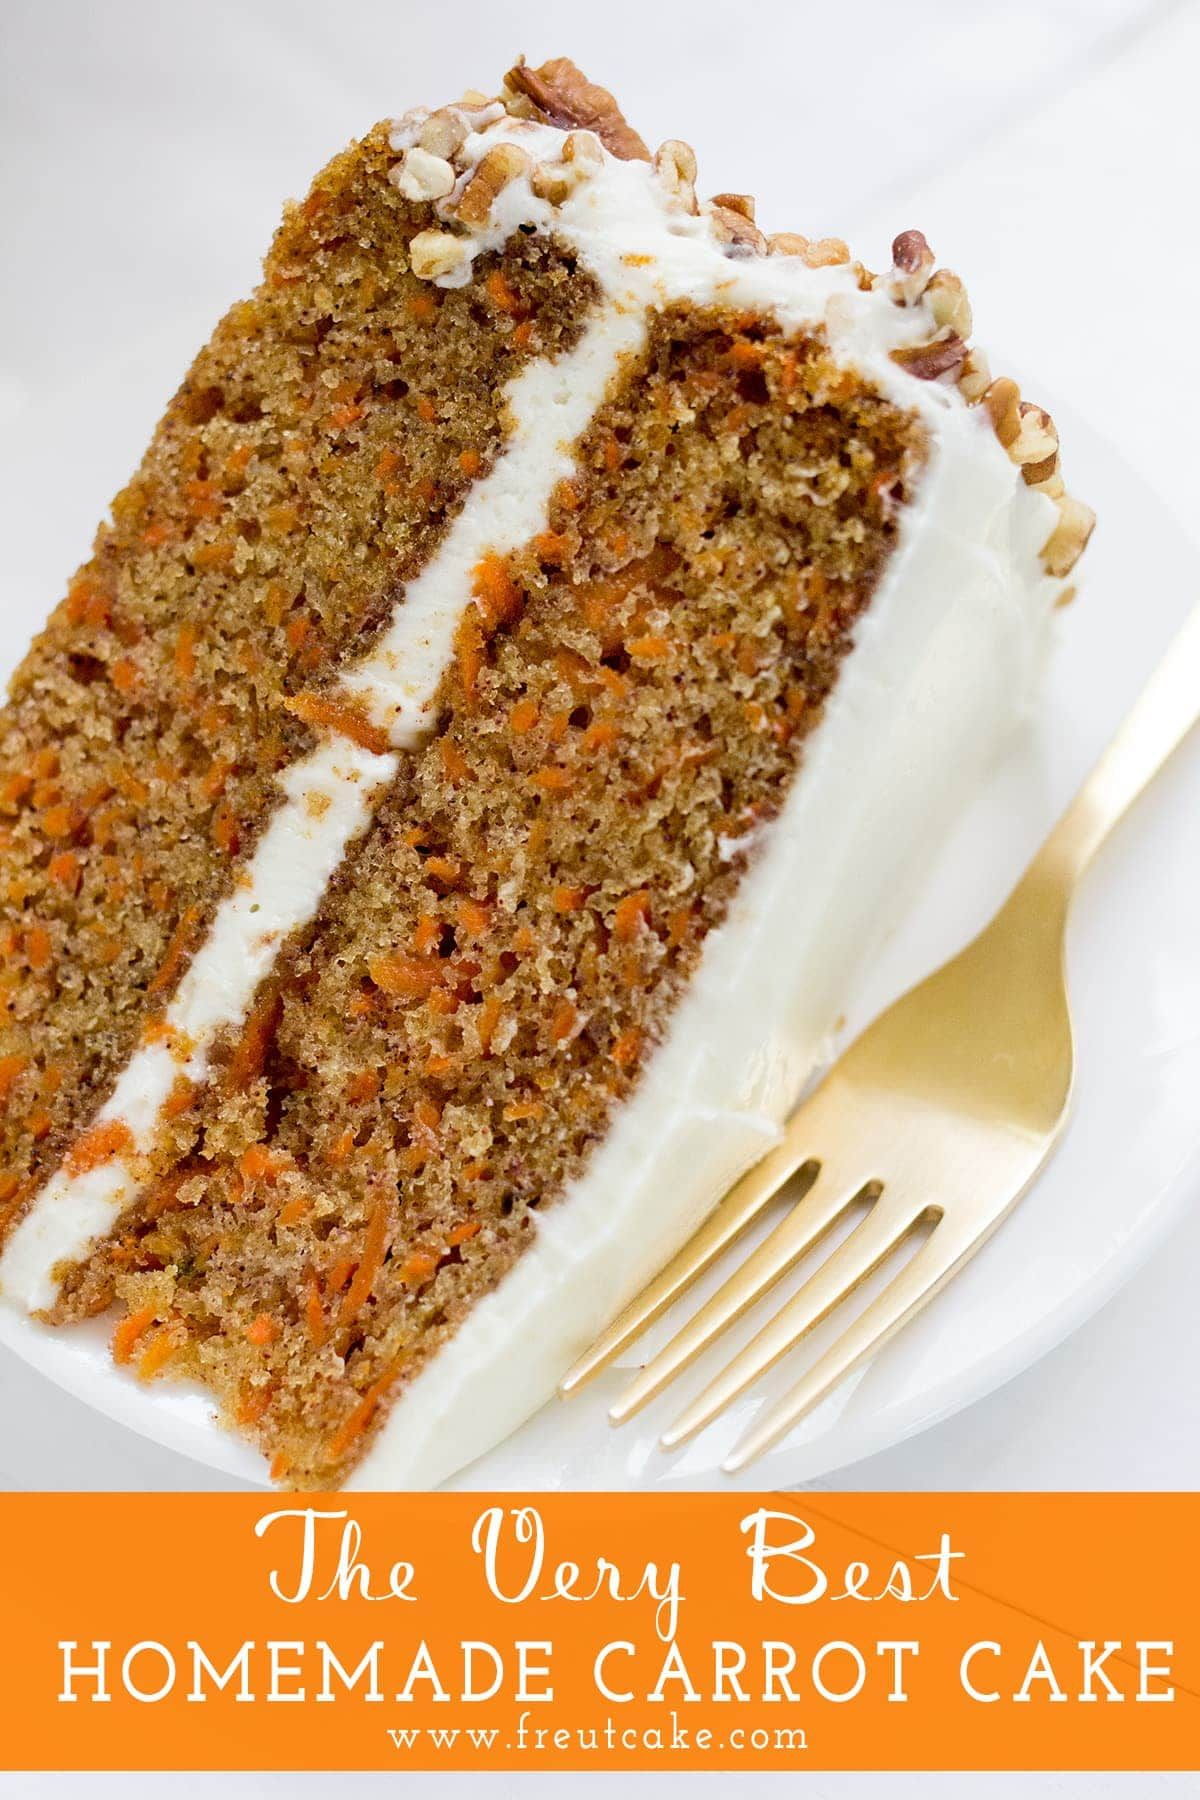 The Very Best Homestyle Carrot Cake with Cream Cheese Frosting perfect for Easter or any family celebration. #Easter #cake #cakerecipe #carrotcake #layercake #creamcheesefrosting